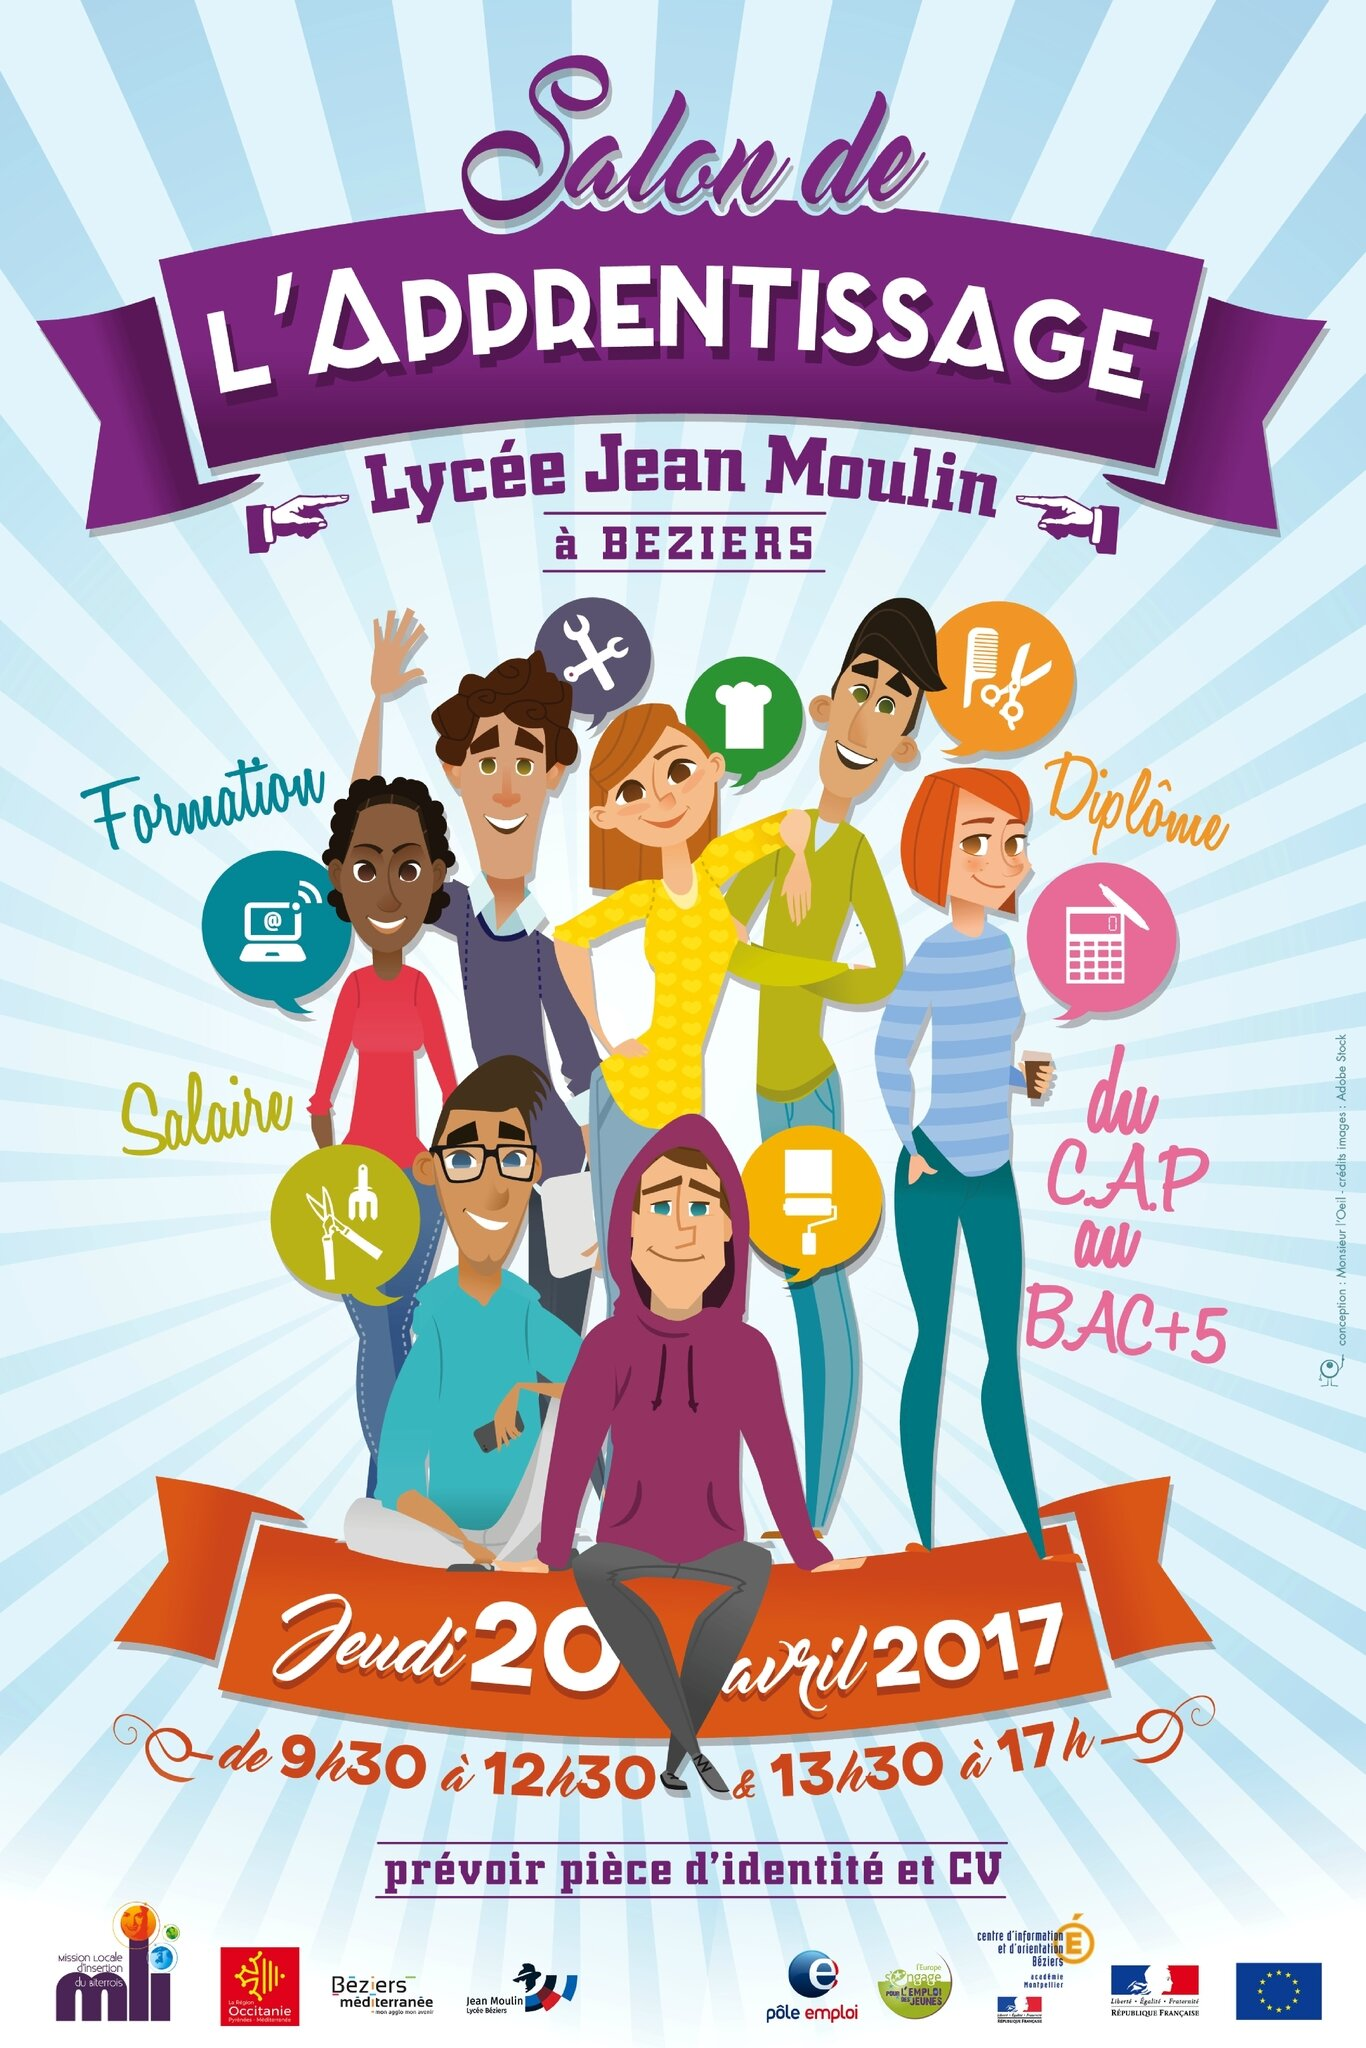 Jeudi 20 avril 2017 le salon de l 39 apprentissage au lyc e for Salon de l apprentissage